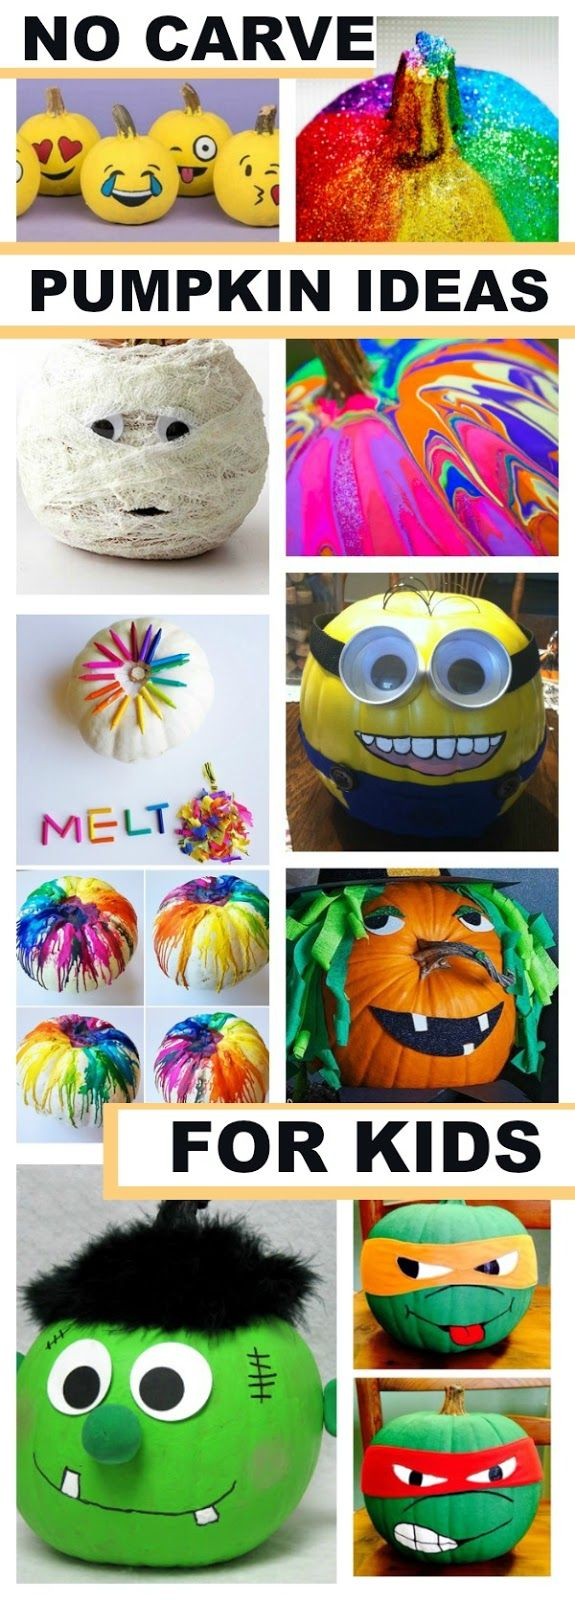 Do you have little ones at home that aren't quite ready to carve their own pumpkins?  Or maybe you are looking for other fun ways to decorat...